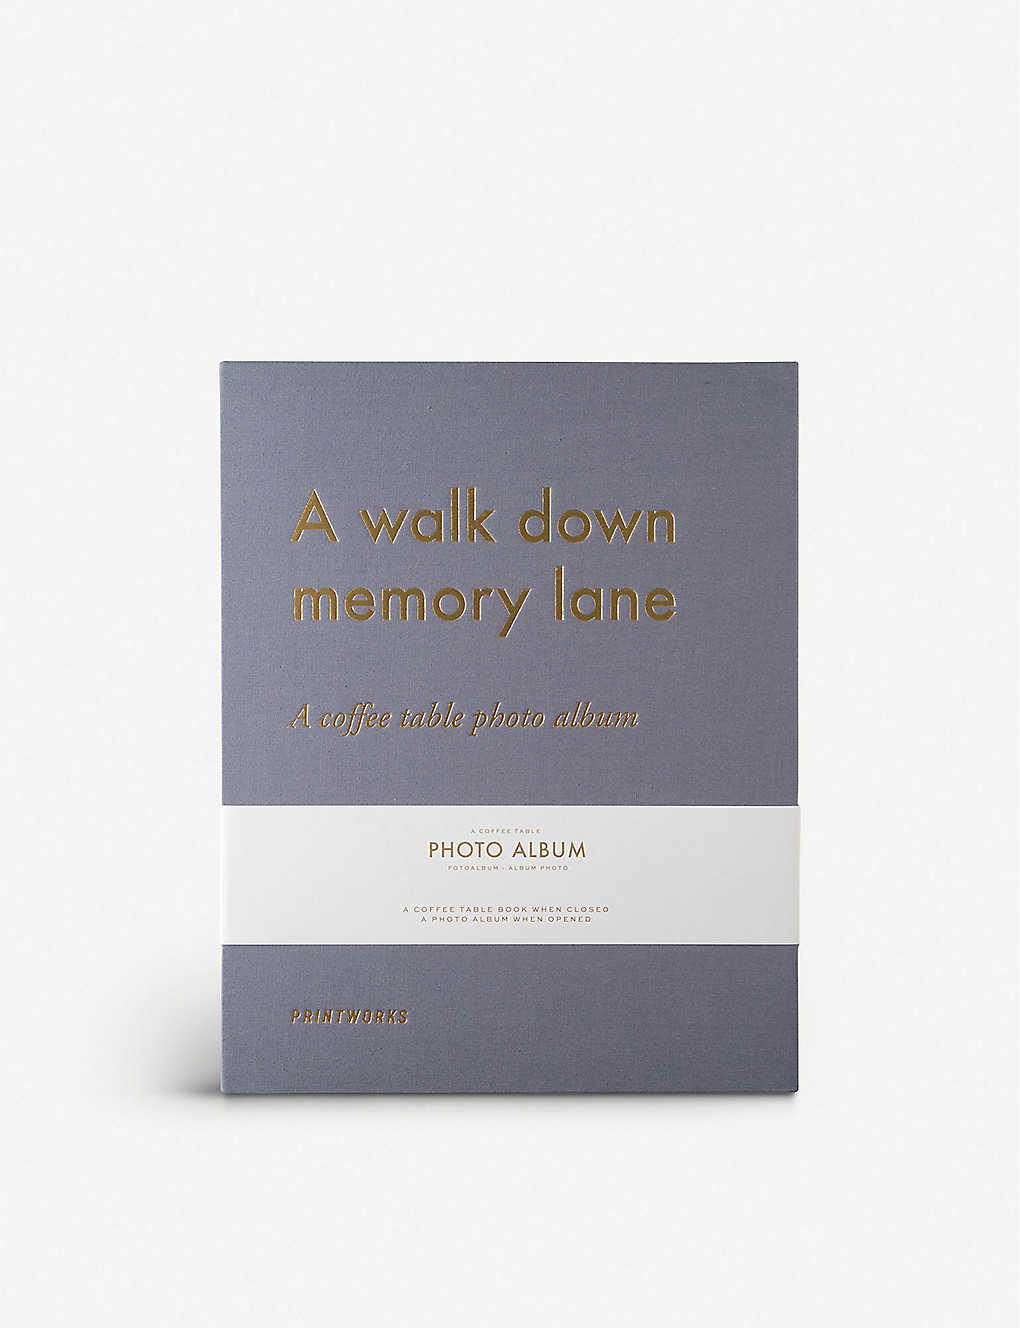 PRINT WORKS: Memory Lane coffee table photo album 19.5cm x 20cm